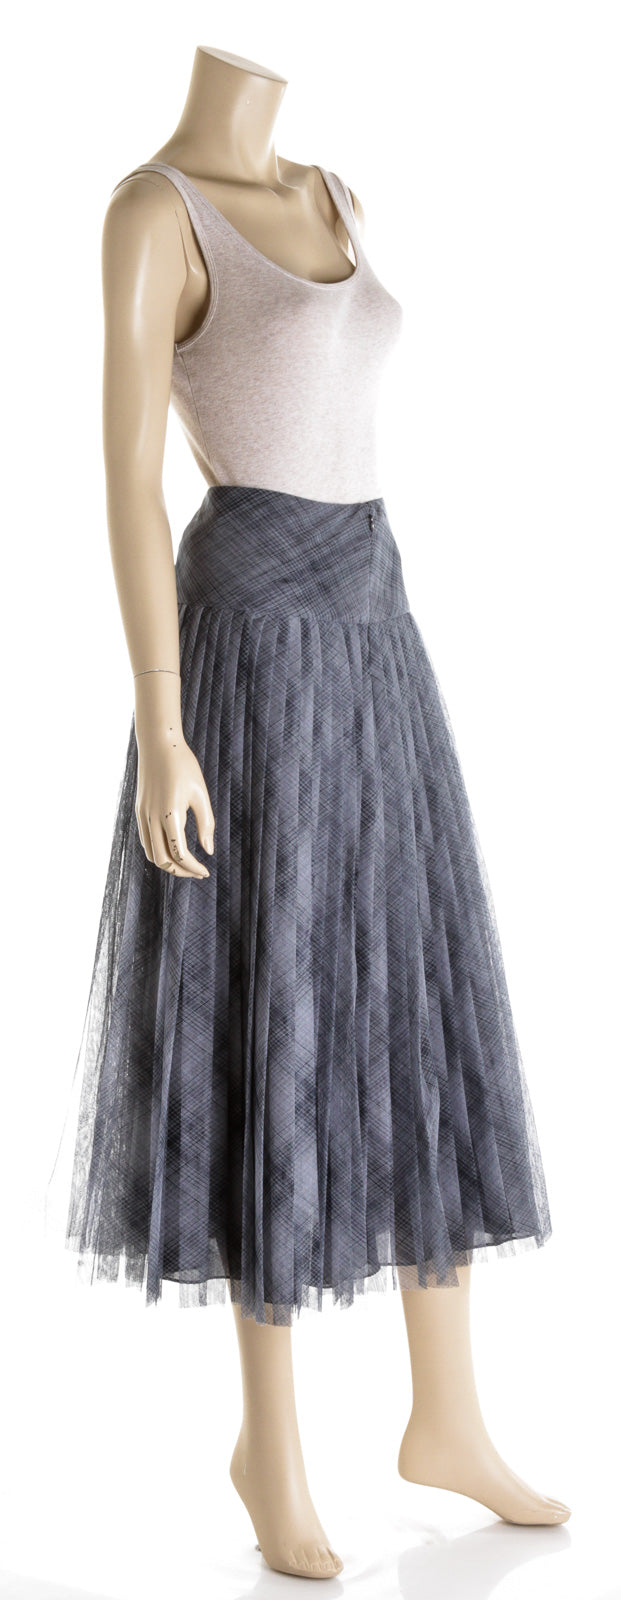 Christian Dior Blue Sheer Plumetis Tulle Midi Skirt (36)